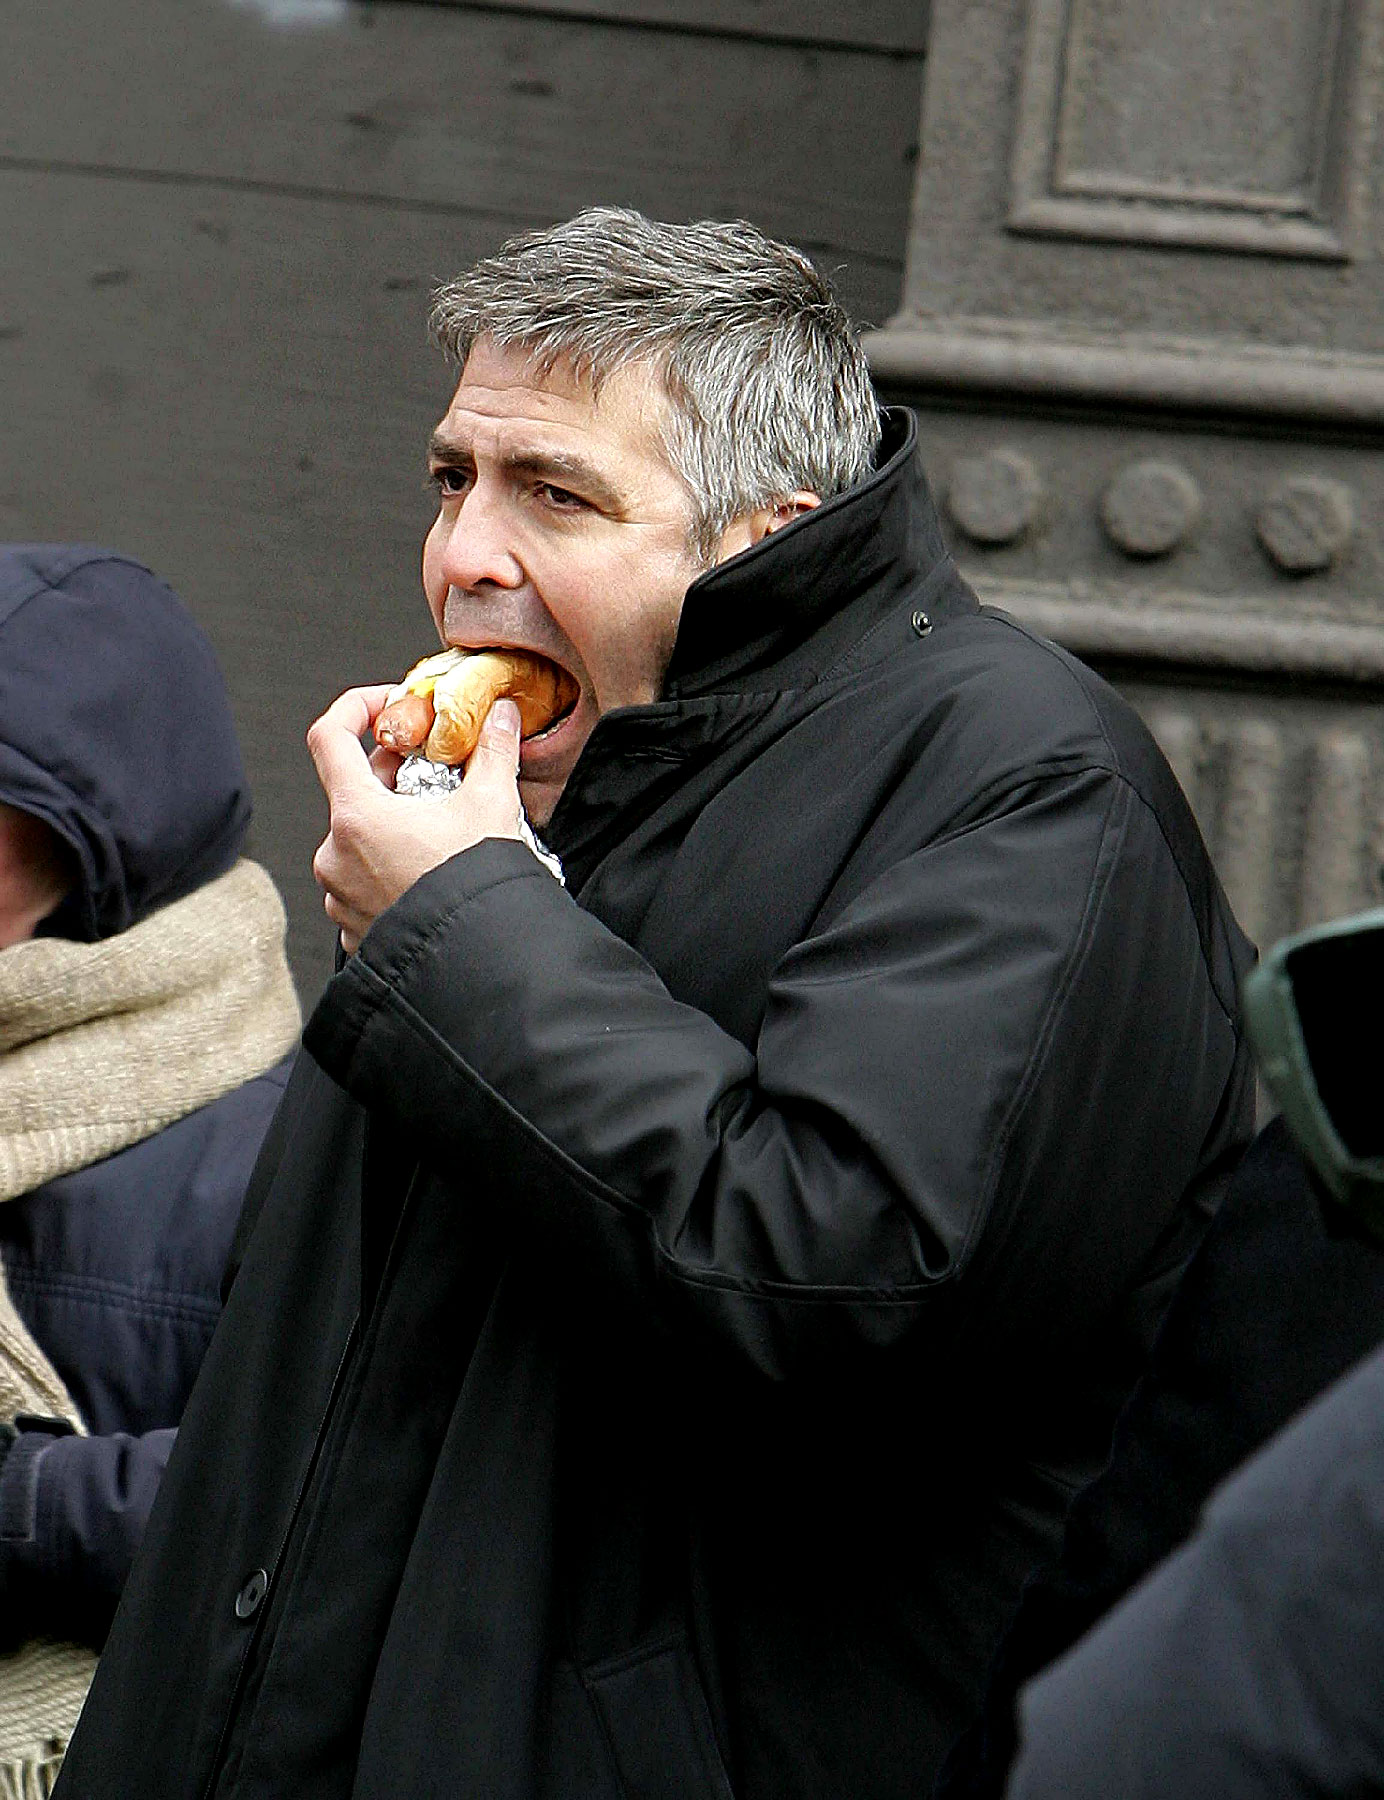 Hot Dog! Celebrity Wiener Eaters (PHOTOS)